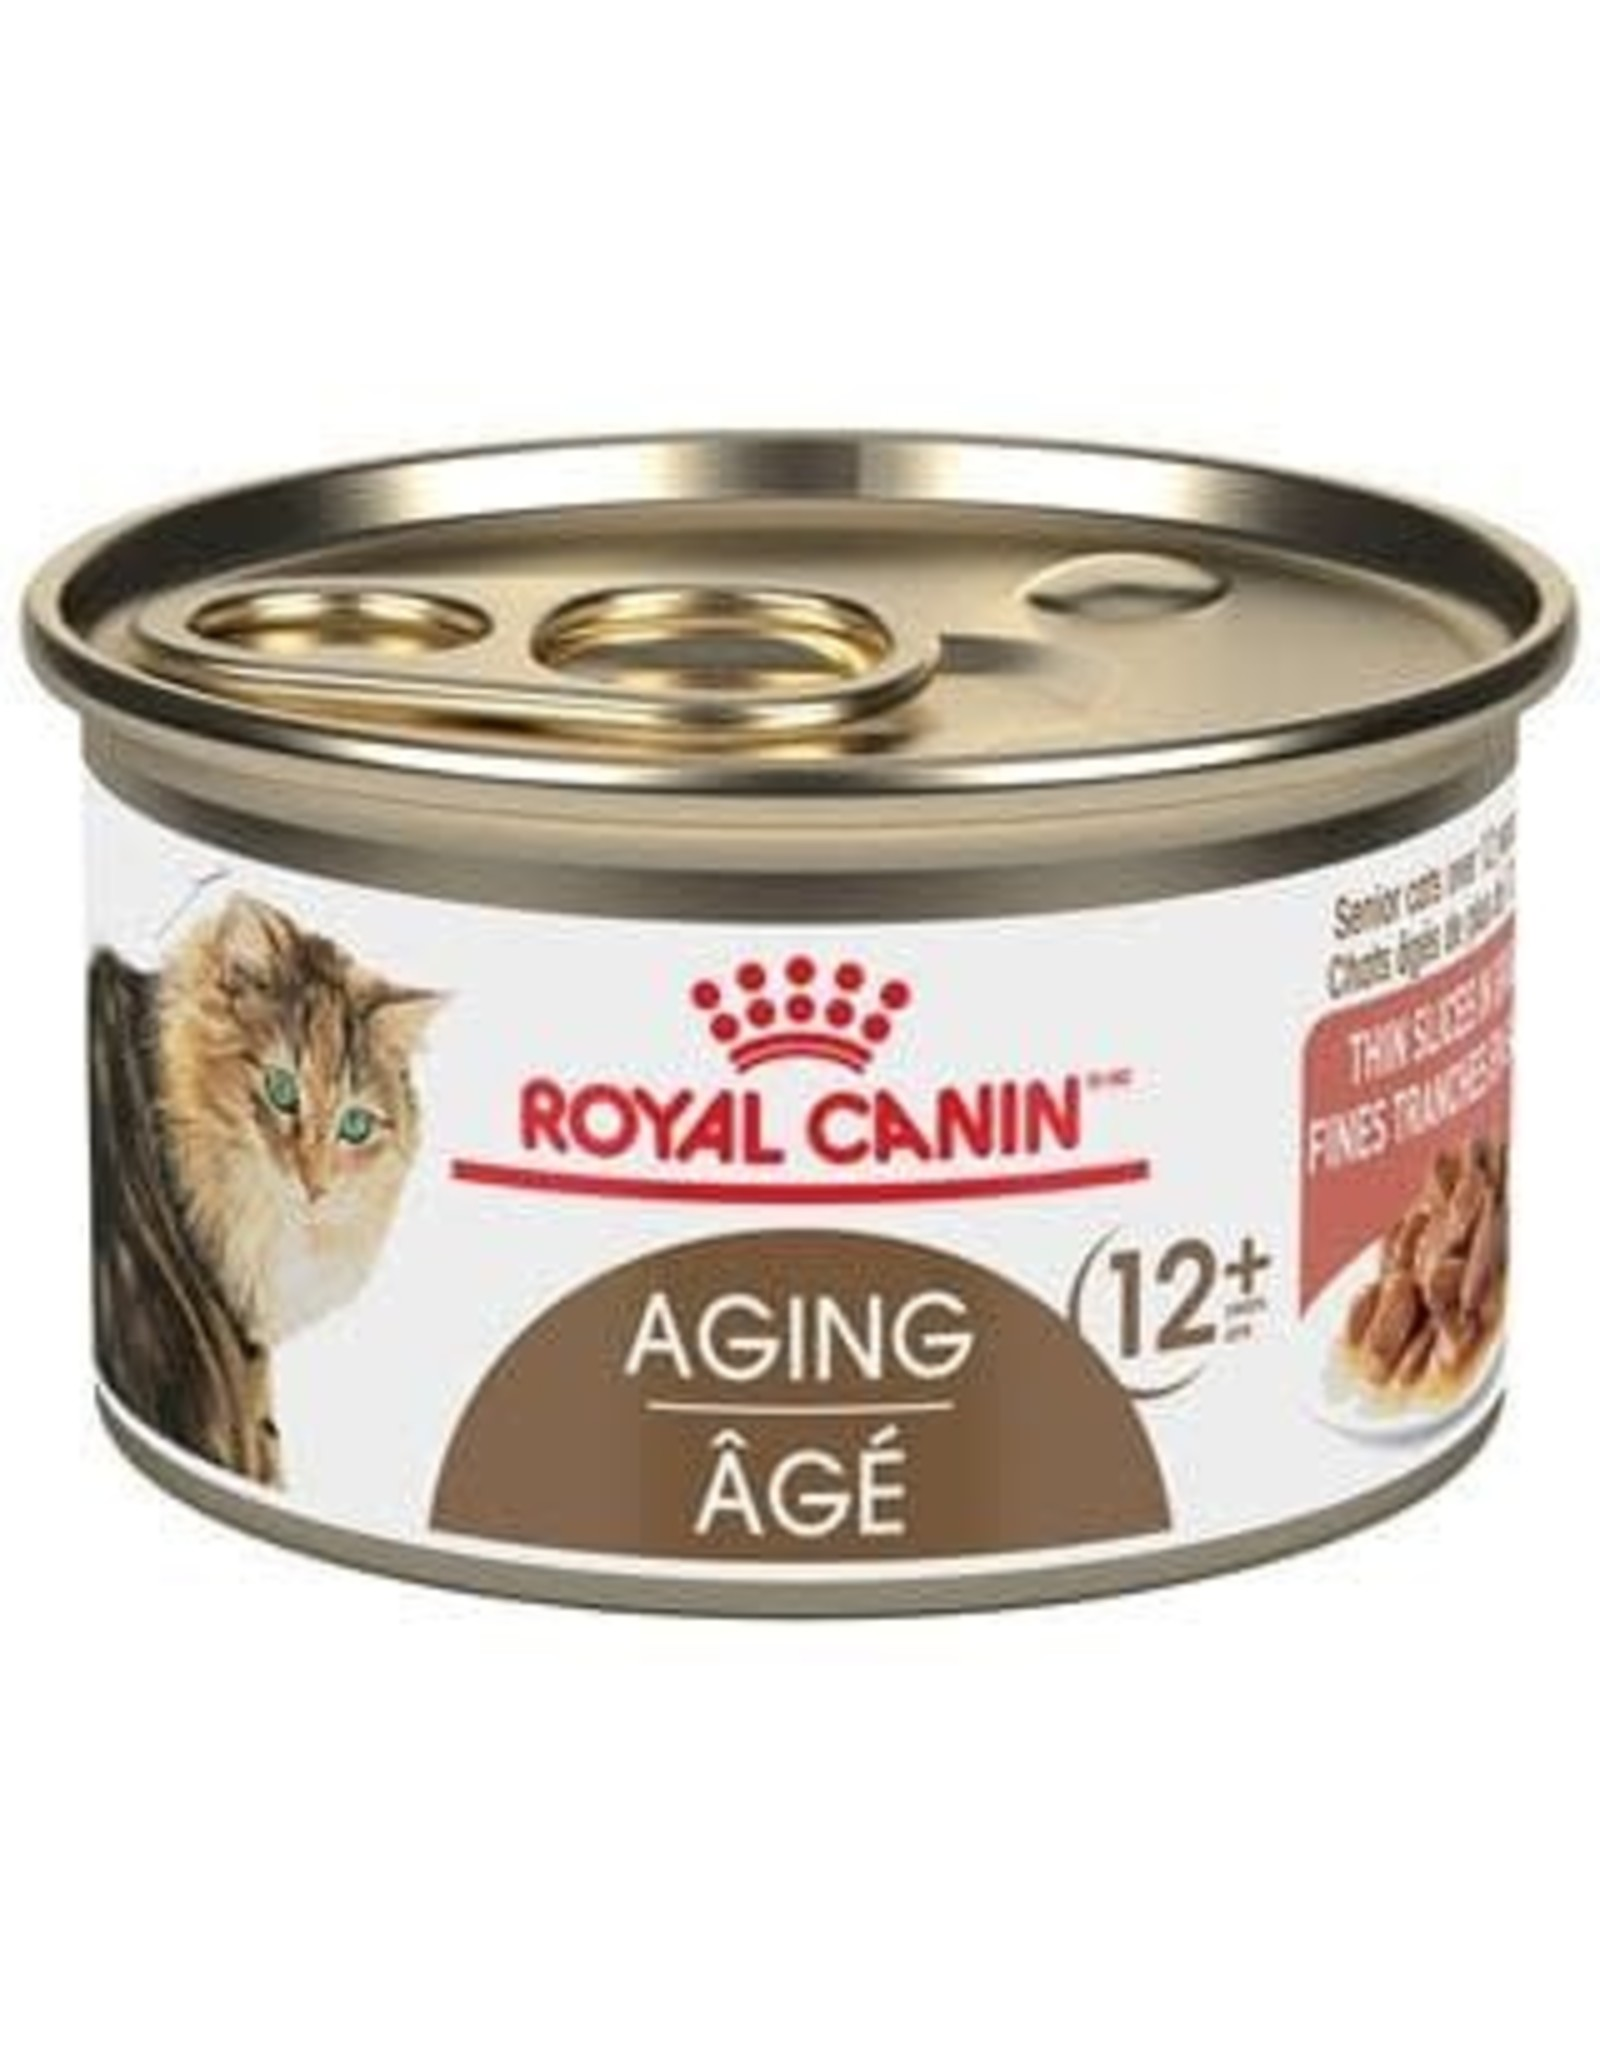 Royal Canin Royal Canin Cat - Aging 12+ Thin slices in gravy 3oz